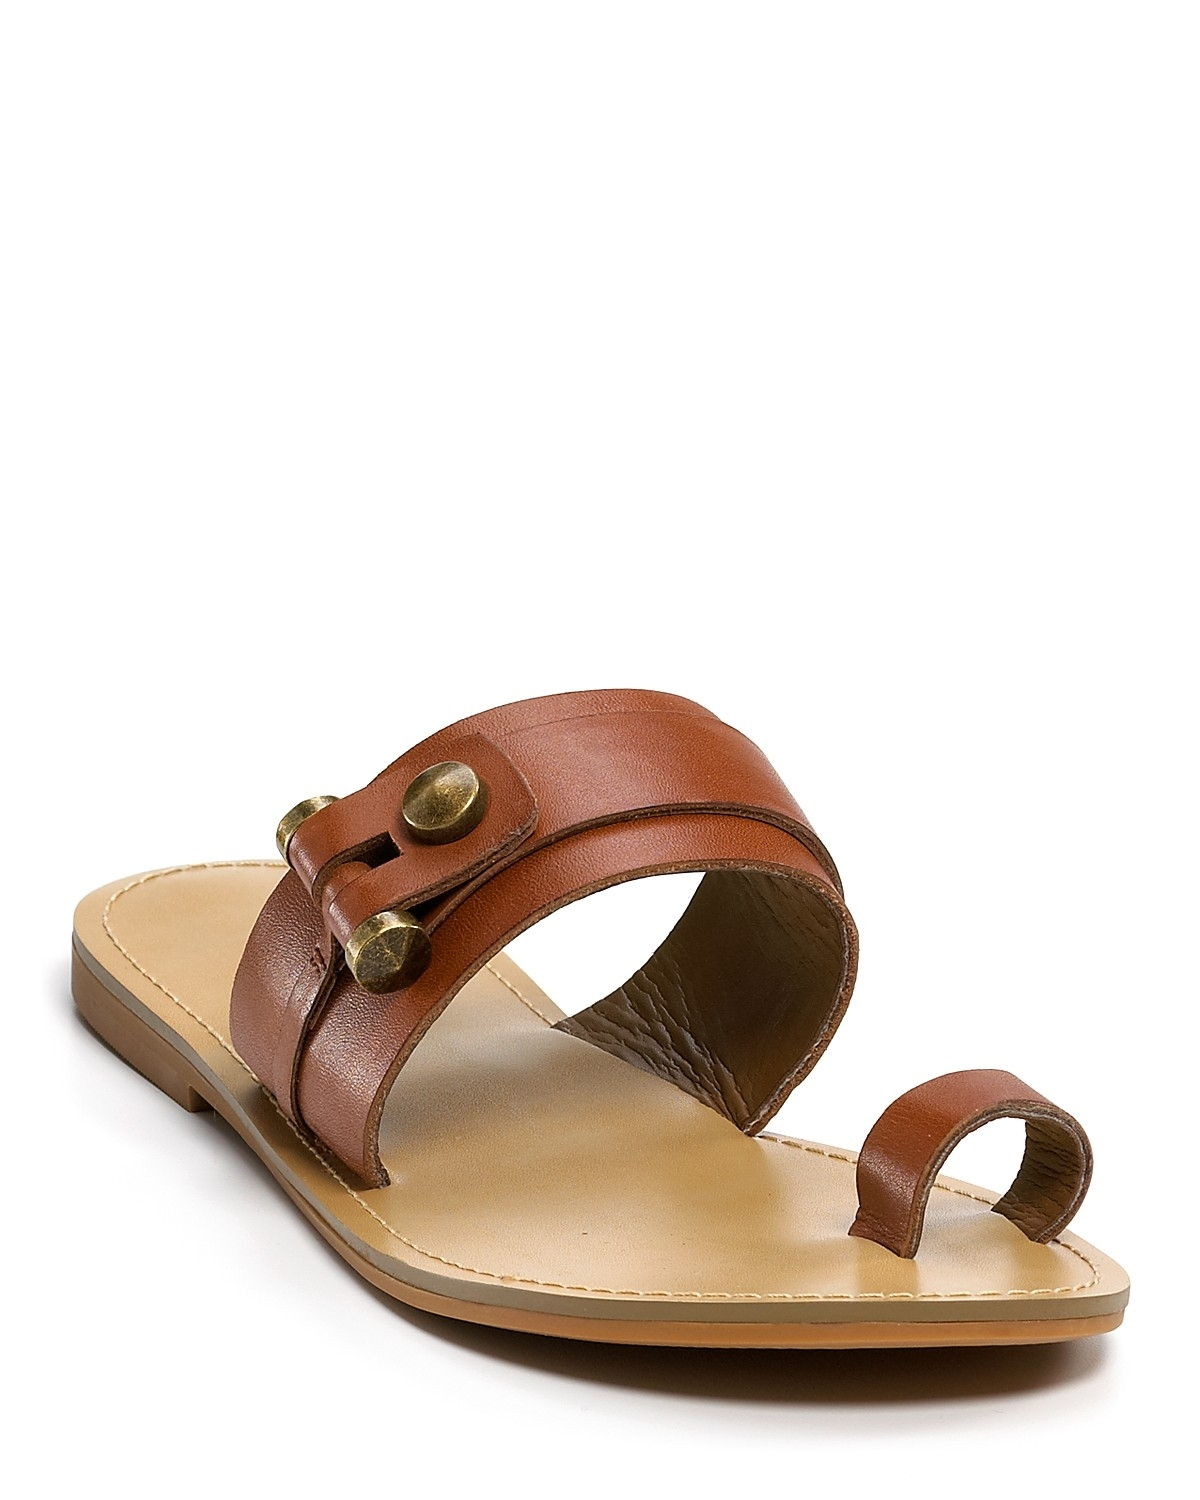 Unisa Sandals With Toe Ring | Aqua Sandals – Bond Toe Ring Regarding Newest Macy's Toe Rings (View 6 of 15)